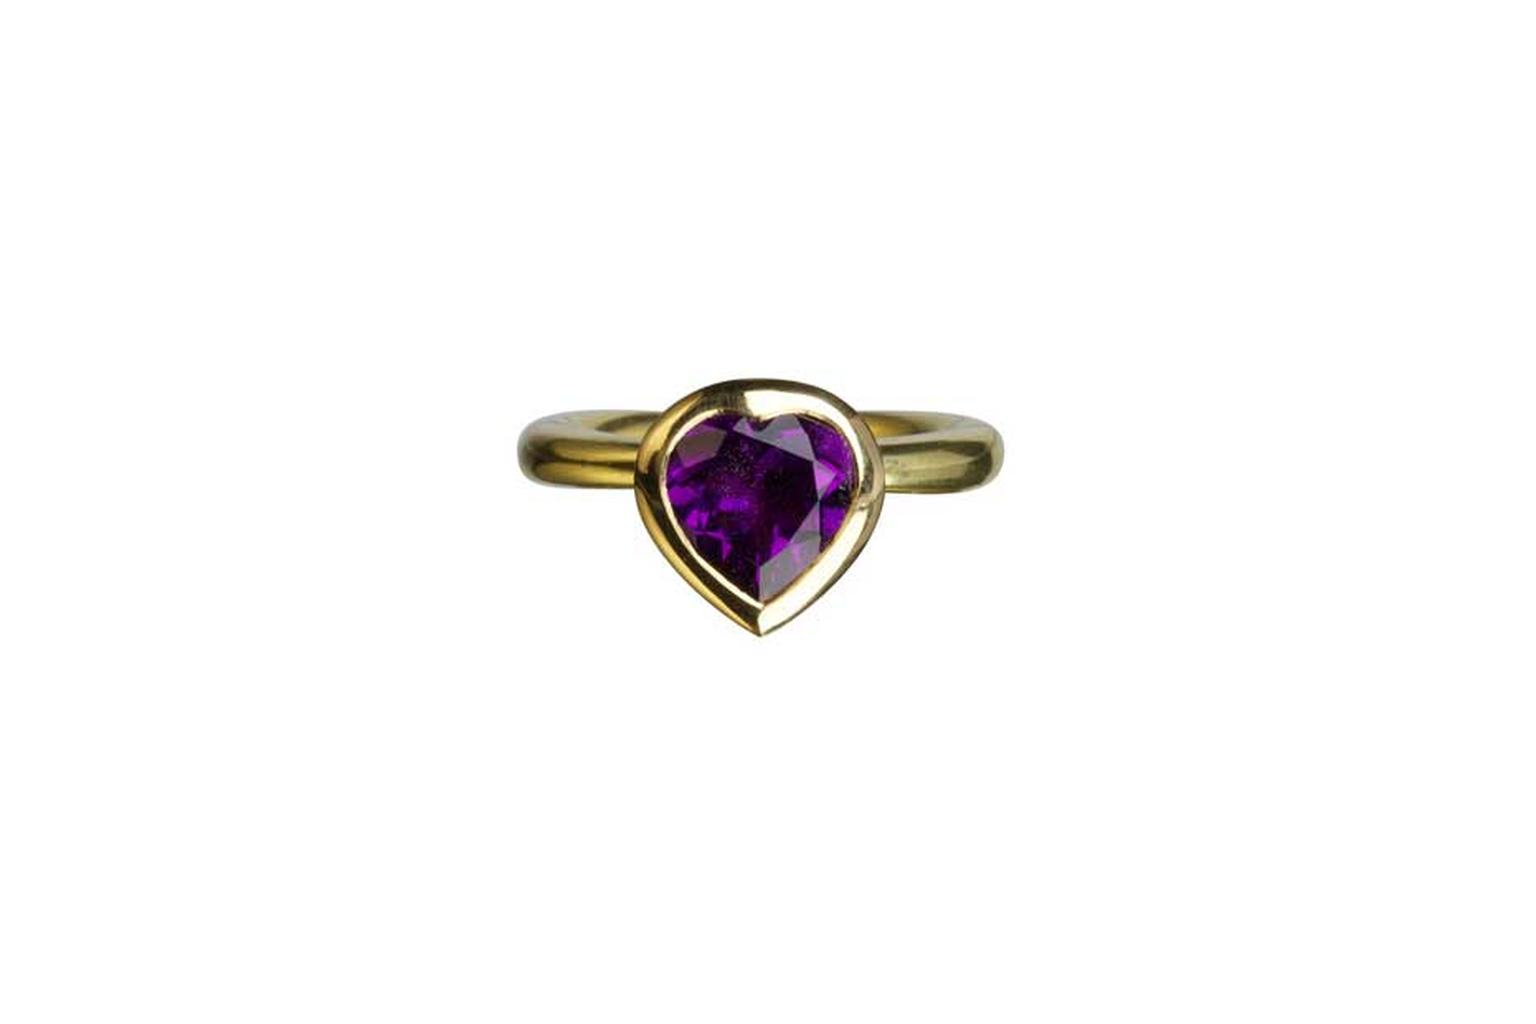 Wright & Teague purple amethyst engagement ring in yellow gold.